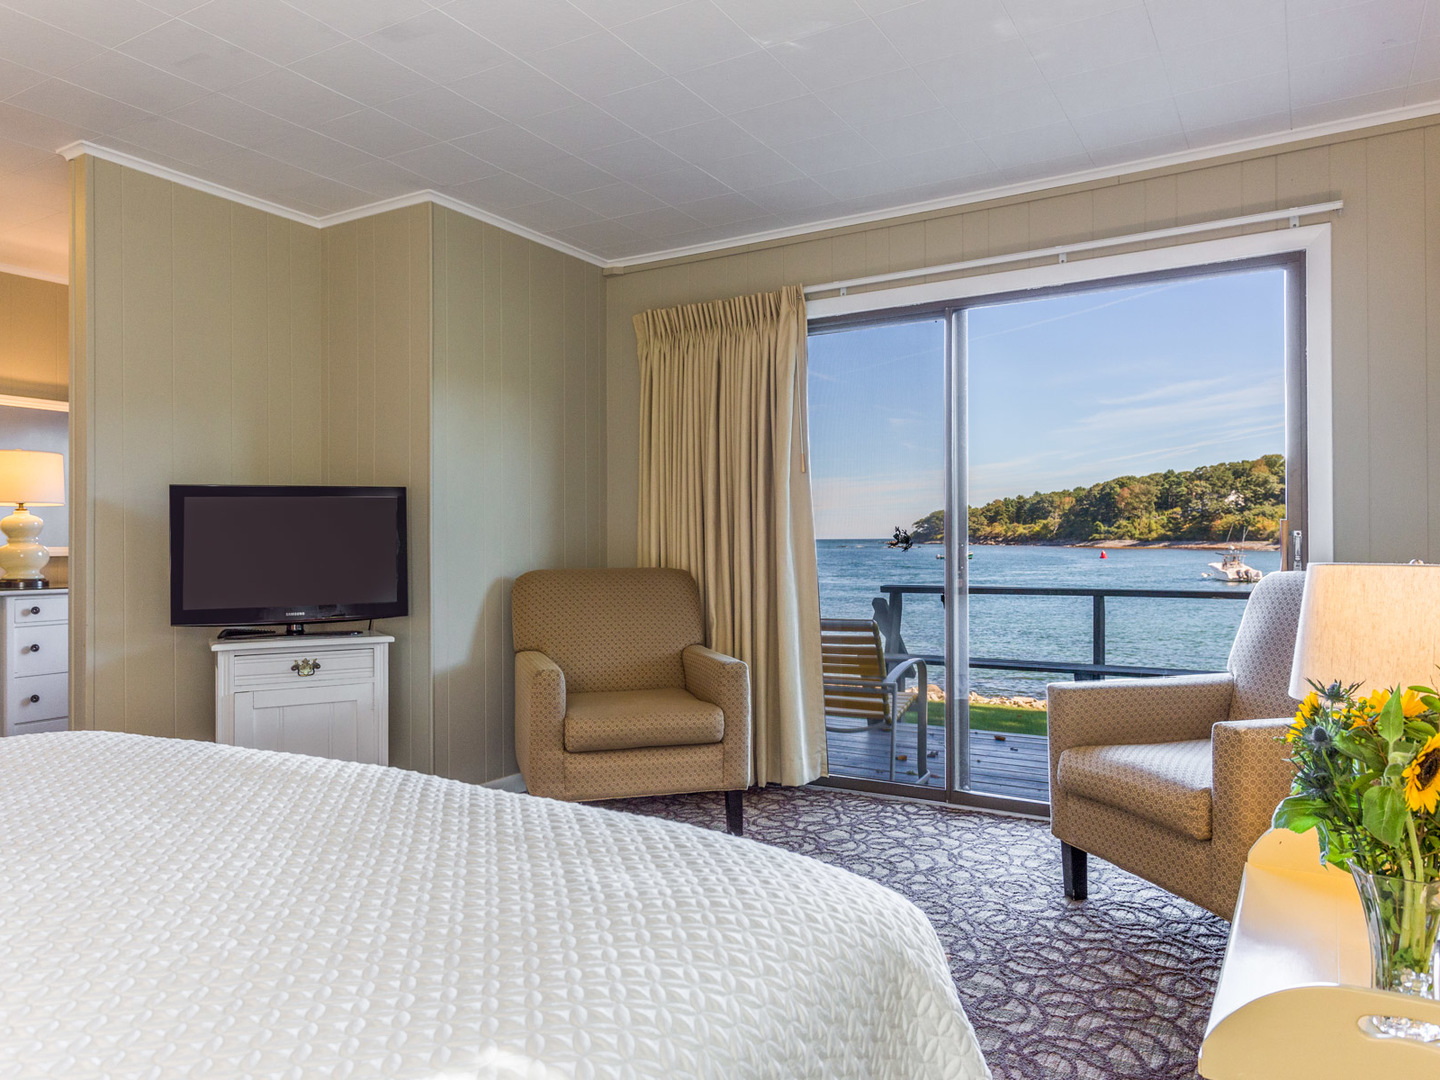 A bedroom with a large bed in a hotel room at Dockside Guest Quarters.